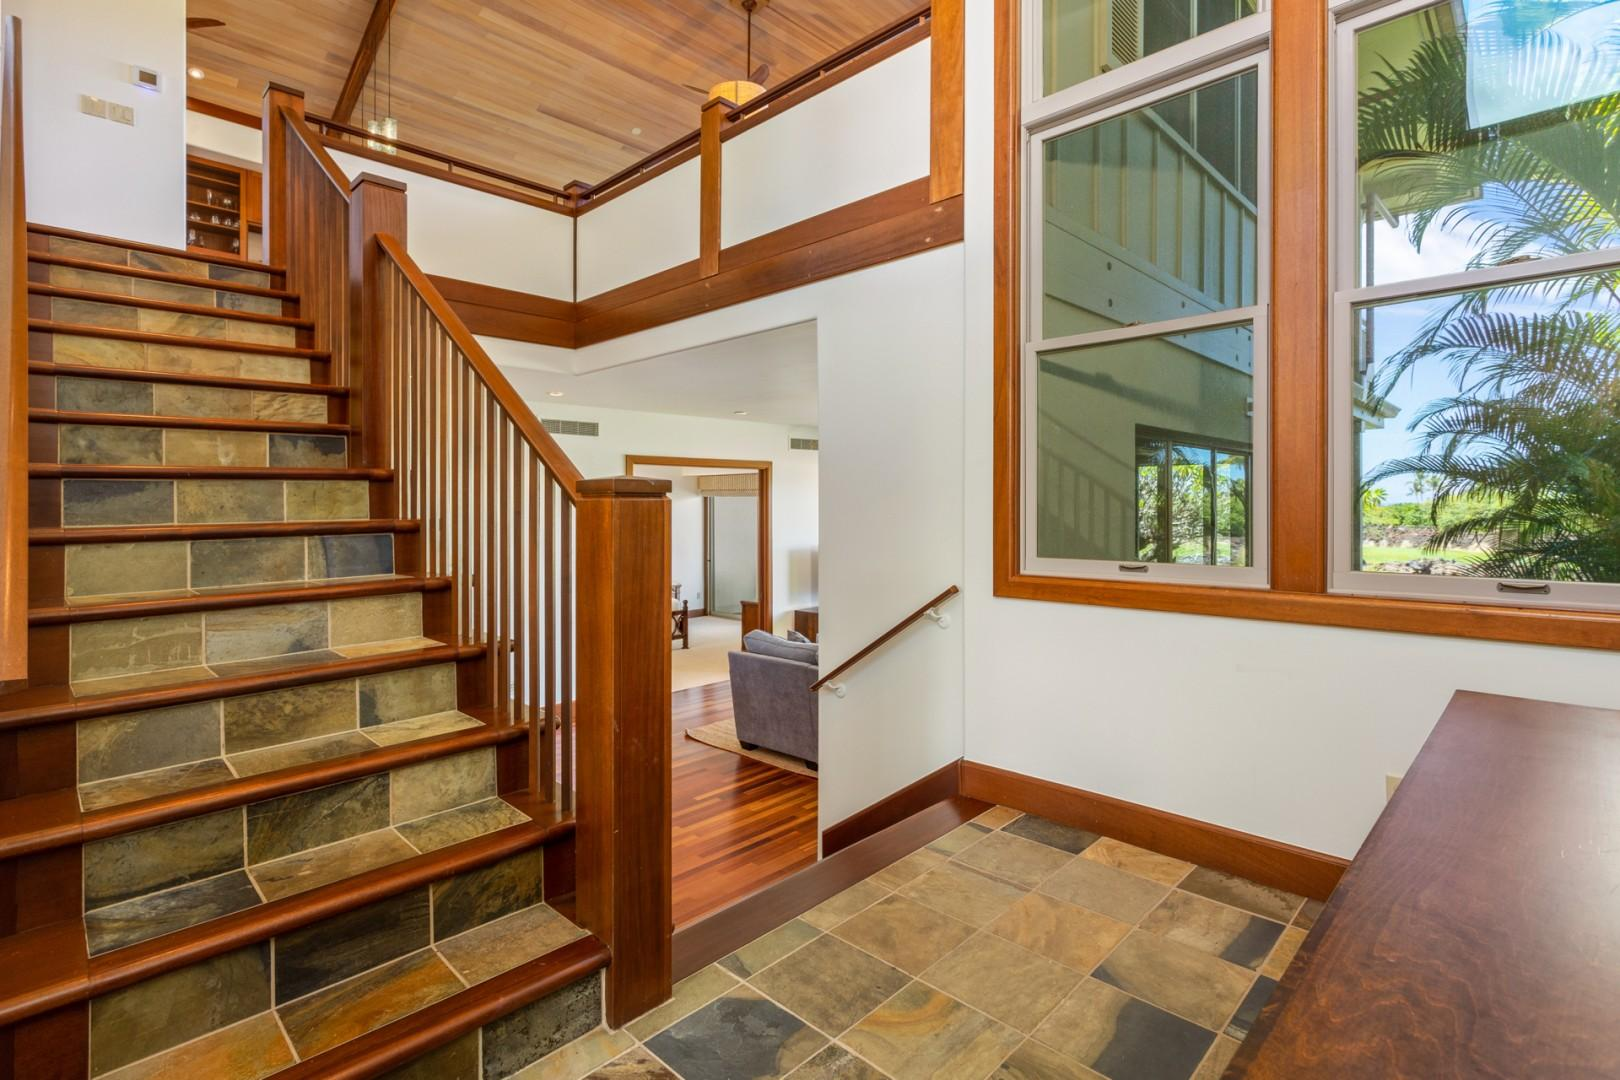 Stately entryway reveals stairways to the upper and lower levels.